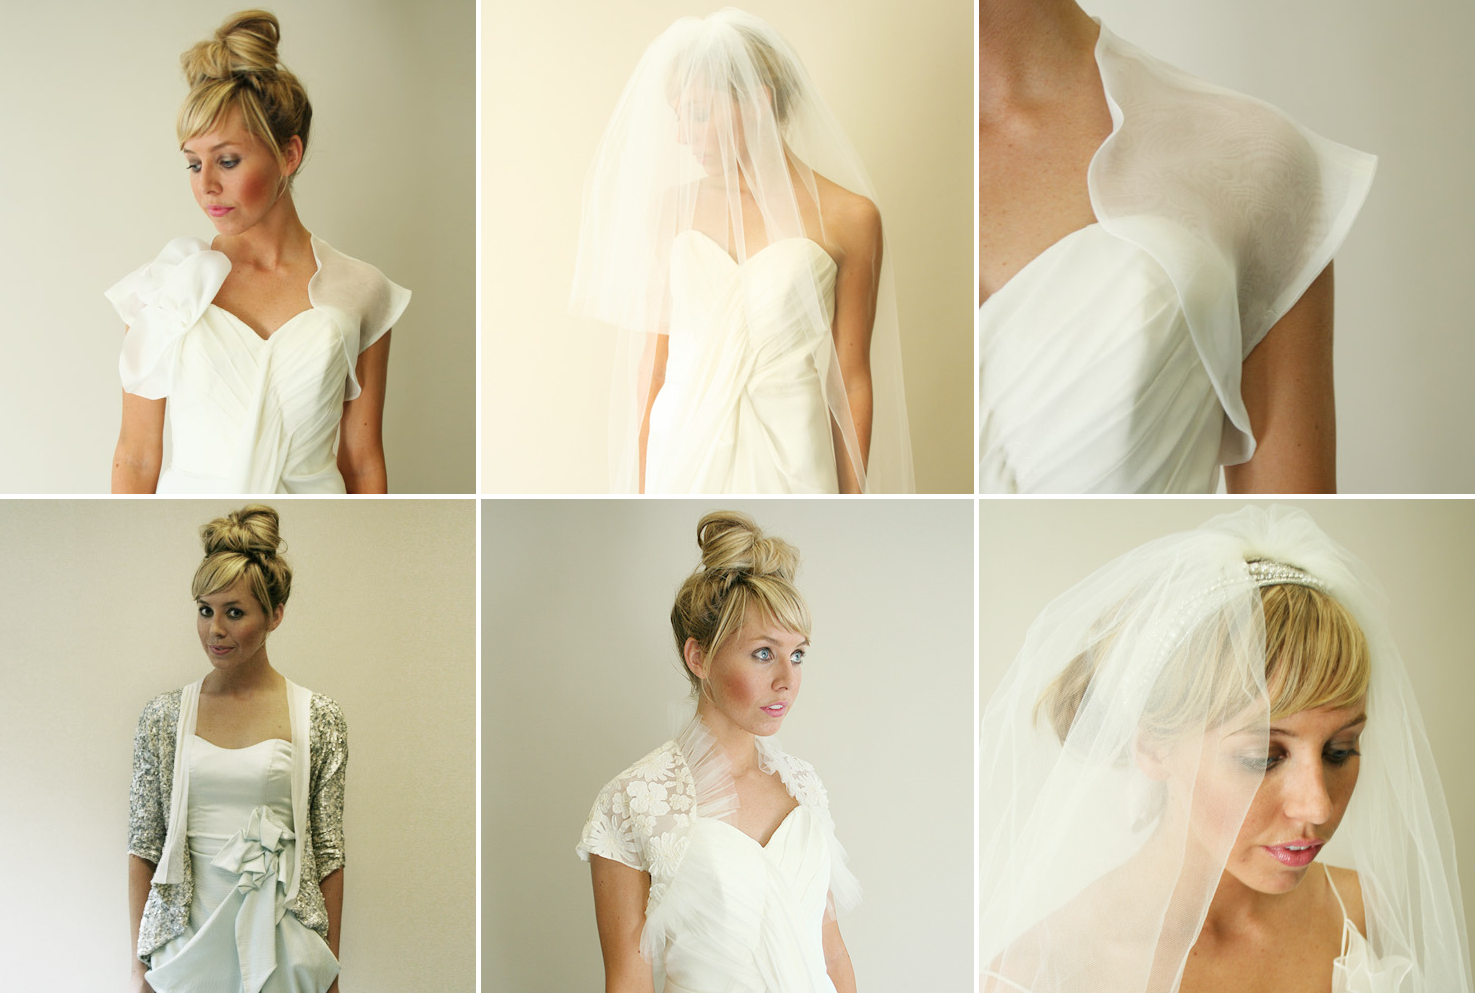 Wedding-accessories-by-carol-hannah-bridal-belts-veils-boleros.original